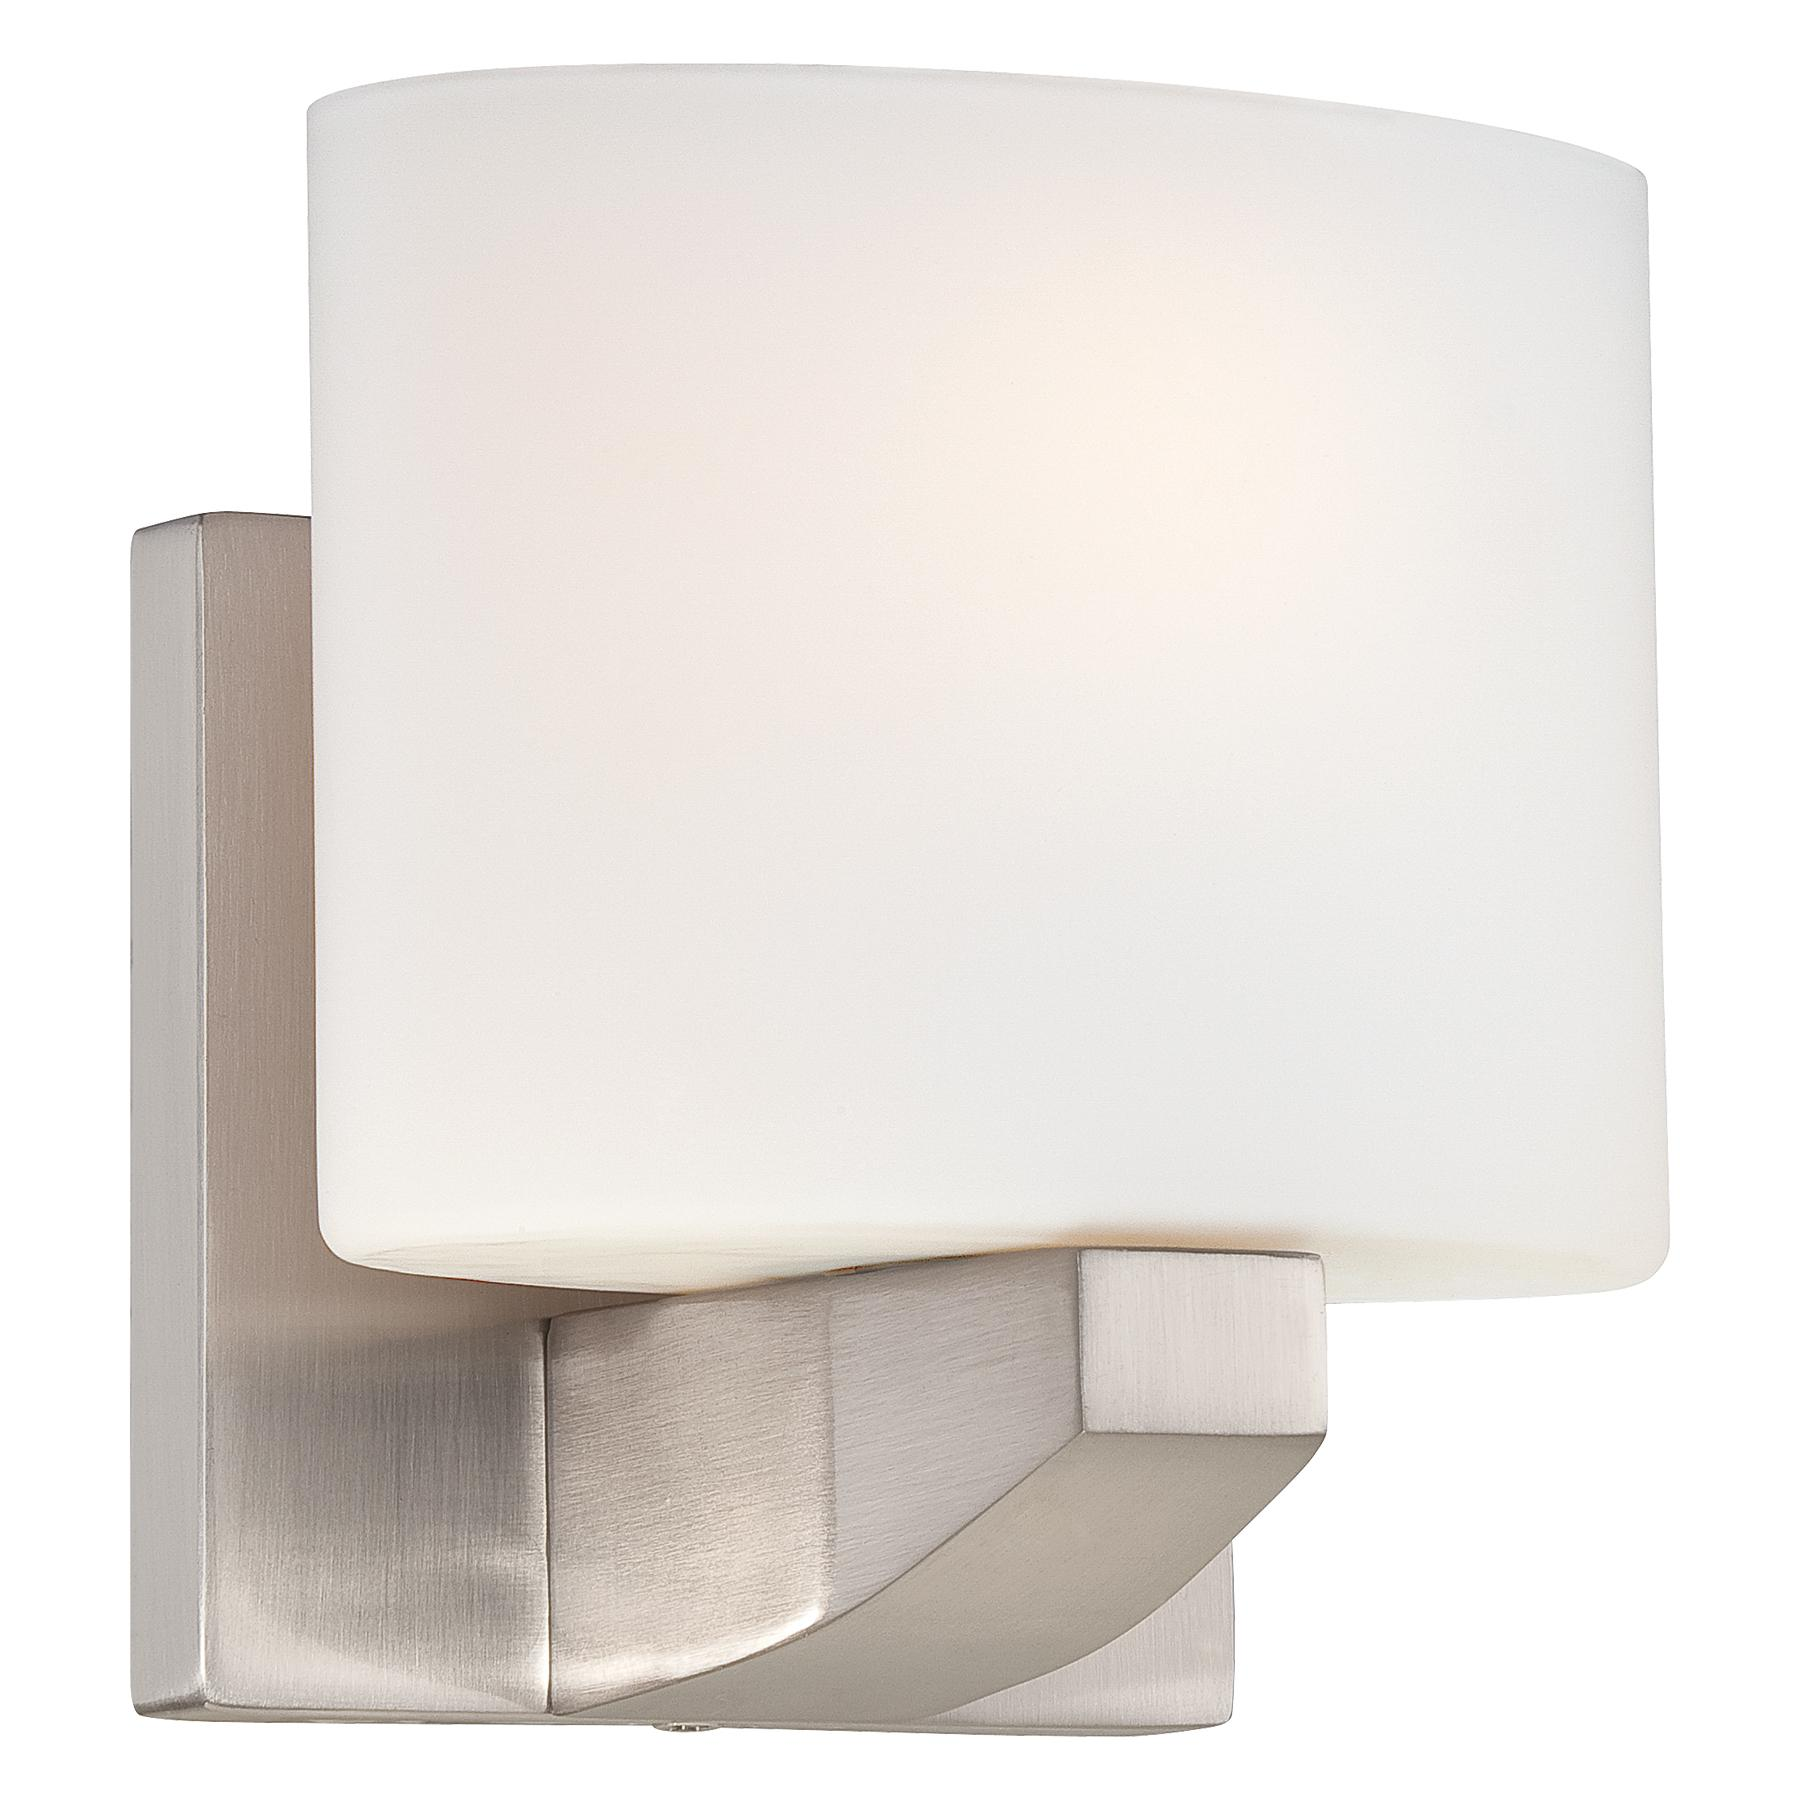 compositions lighting com wall wide item sconce cfm lavery minka capitol inch